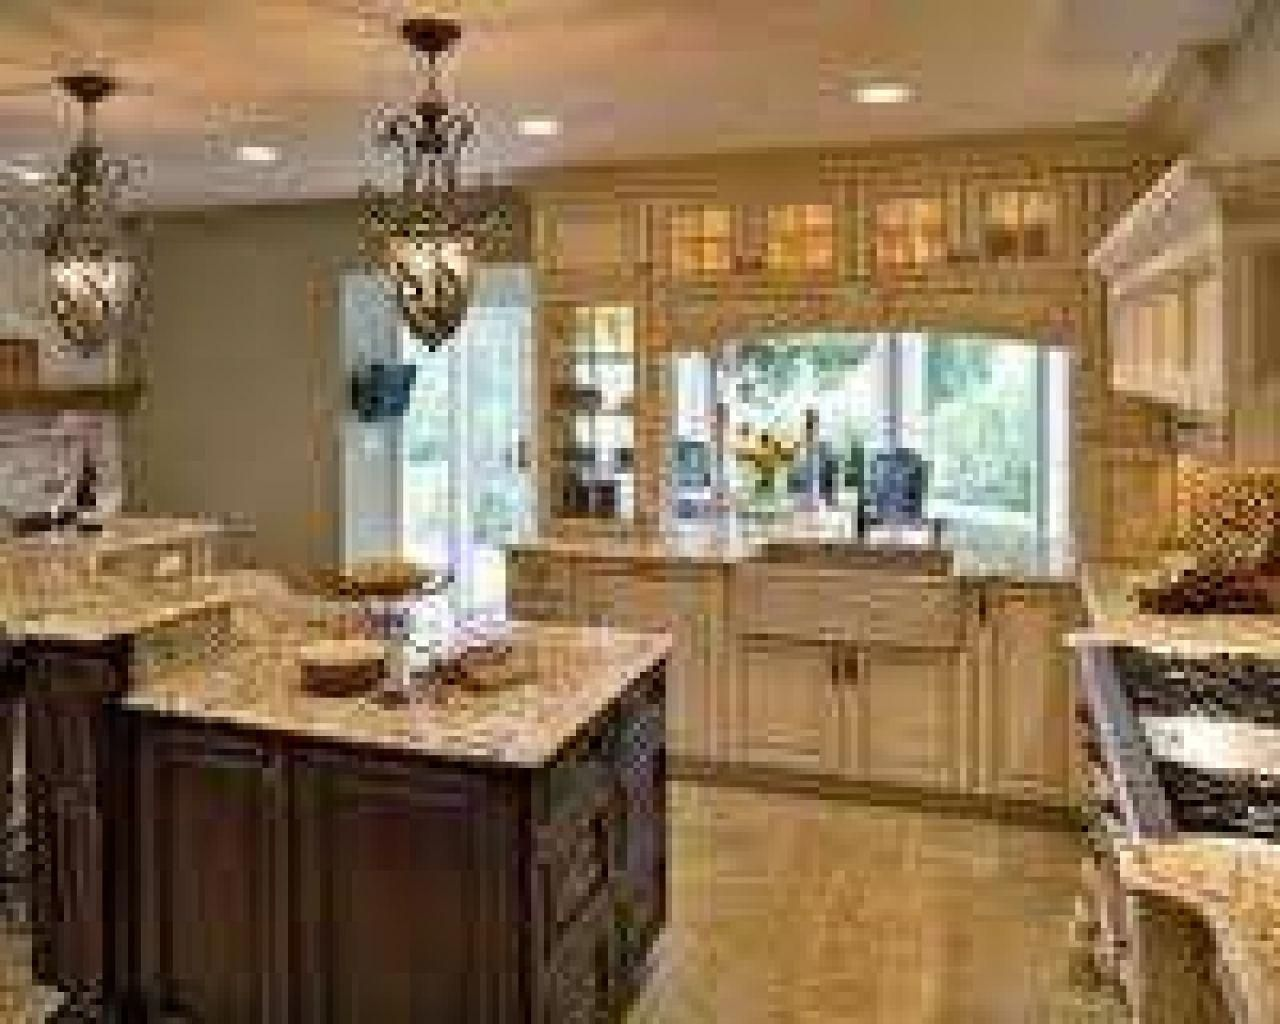 prodigious Tuscan Kitchen Cabinet Hardware Part - 2: tuscan style kitchens | Tuscan kitchen style design ideas cabinets hardware  curtains decor #Tuscankitchens